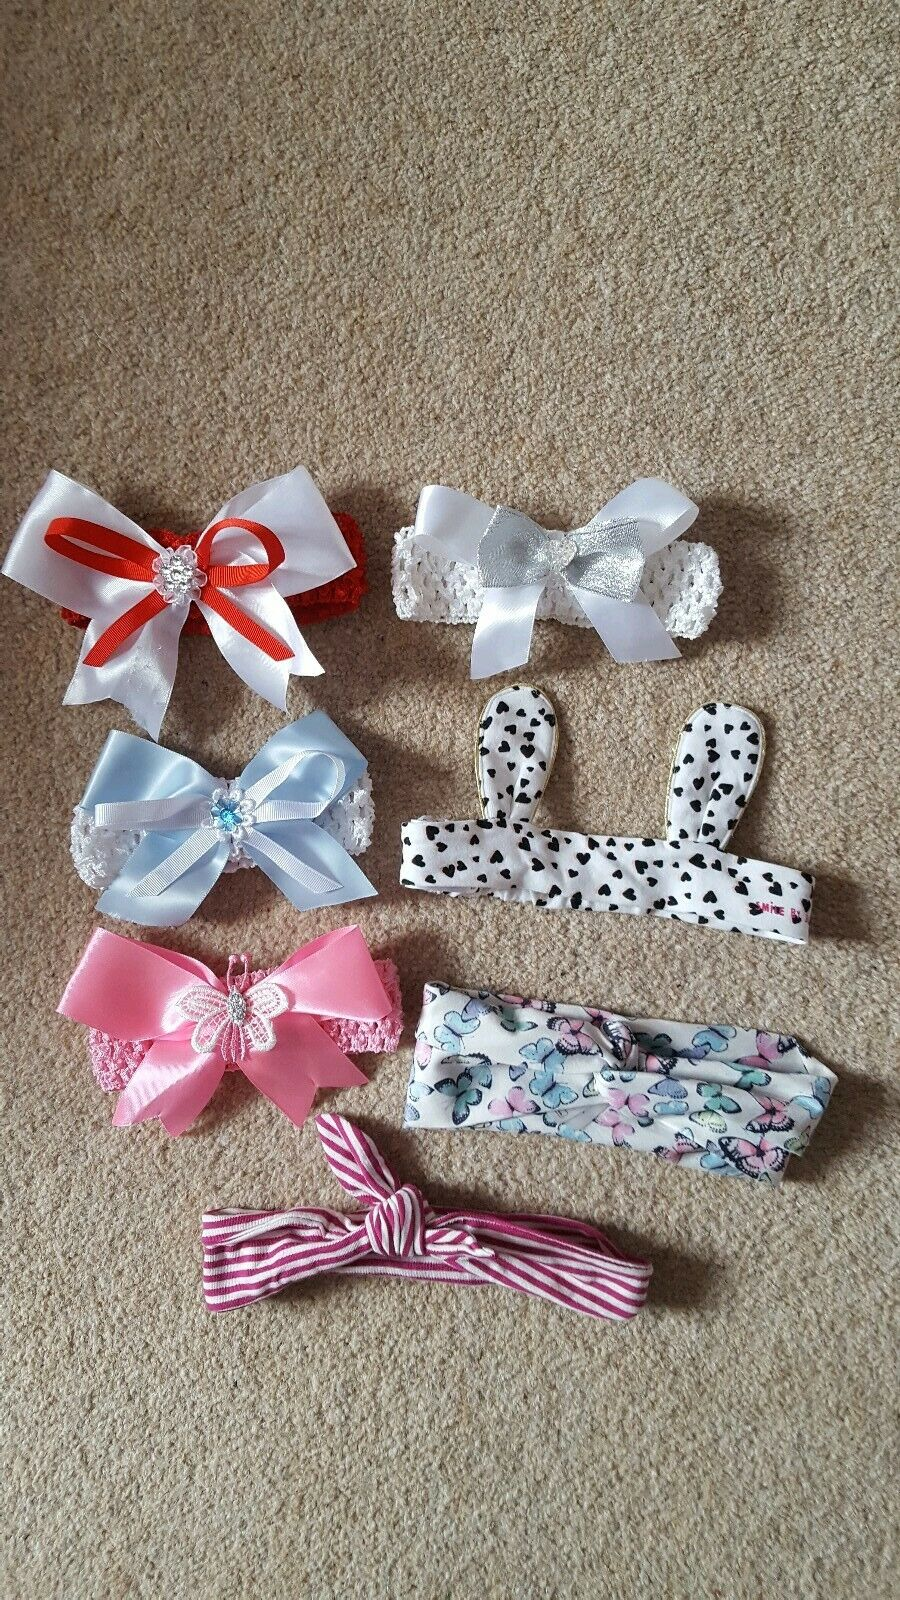 7 headbands one size baby girl pink blue red white butterfly